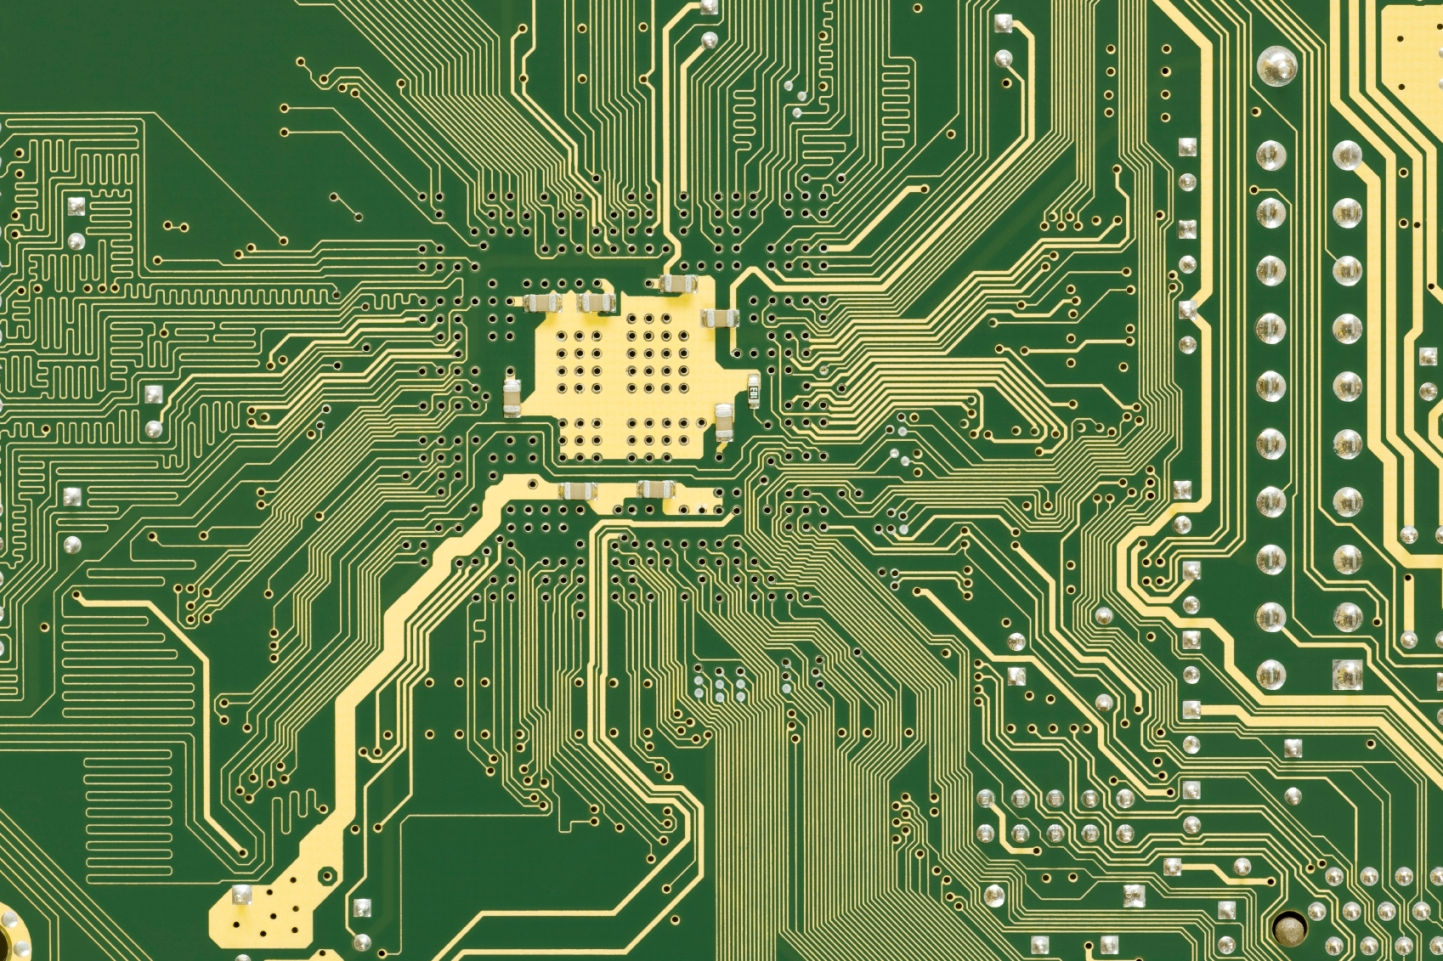 Mountain Manufacturing Electronic And Pcb Assembly Circuit Board Design Layout Estimate Services